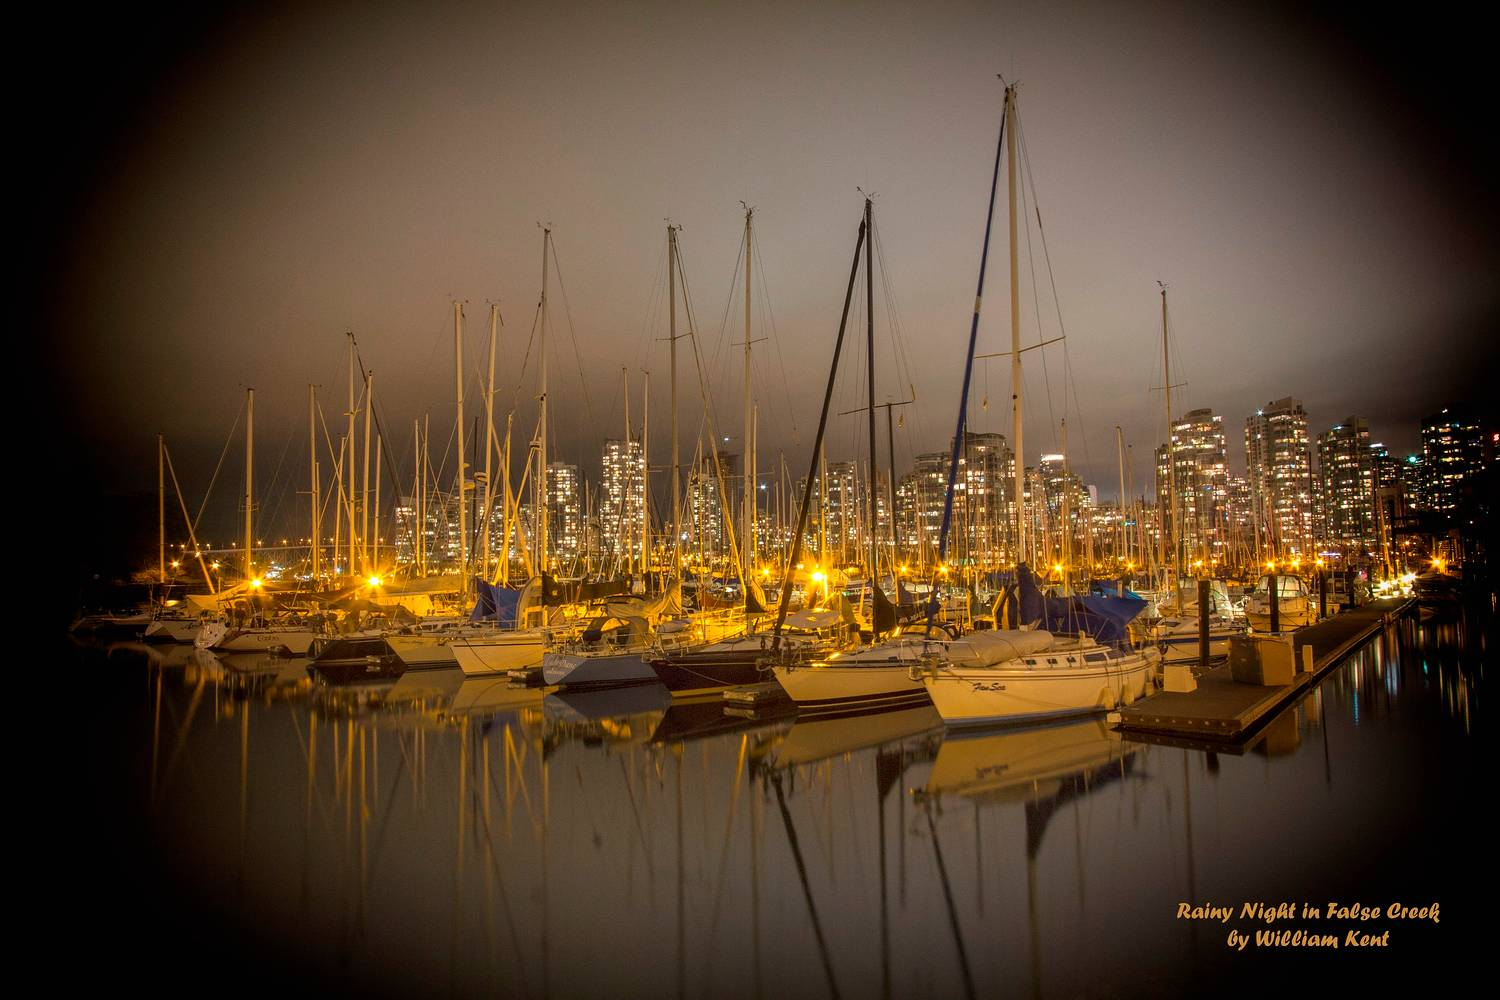 Rainy Night in False Creek by William Kent